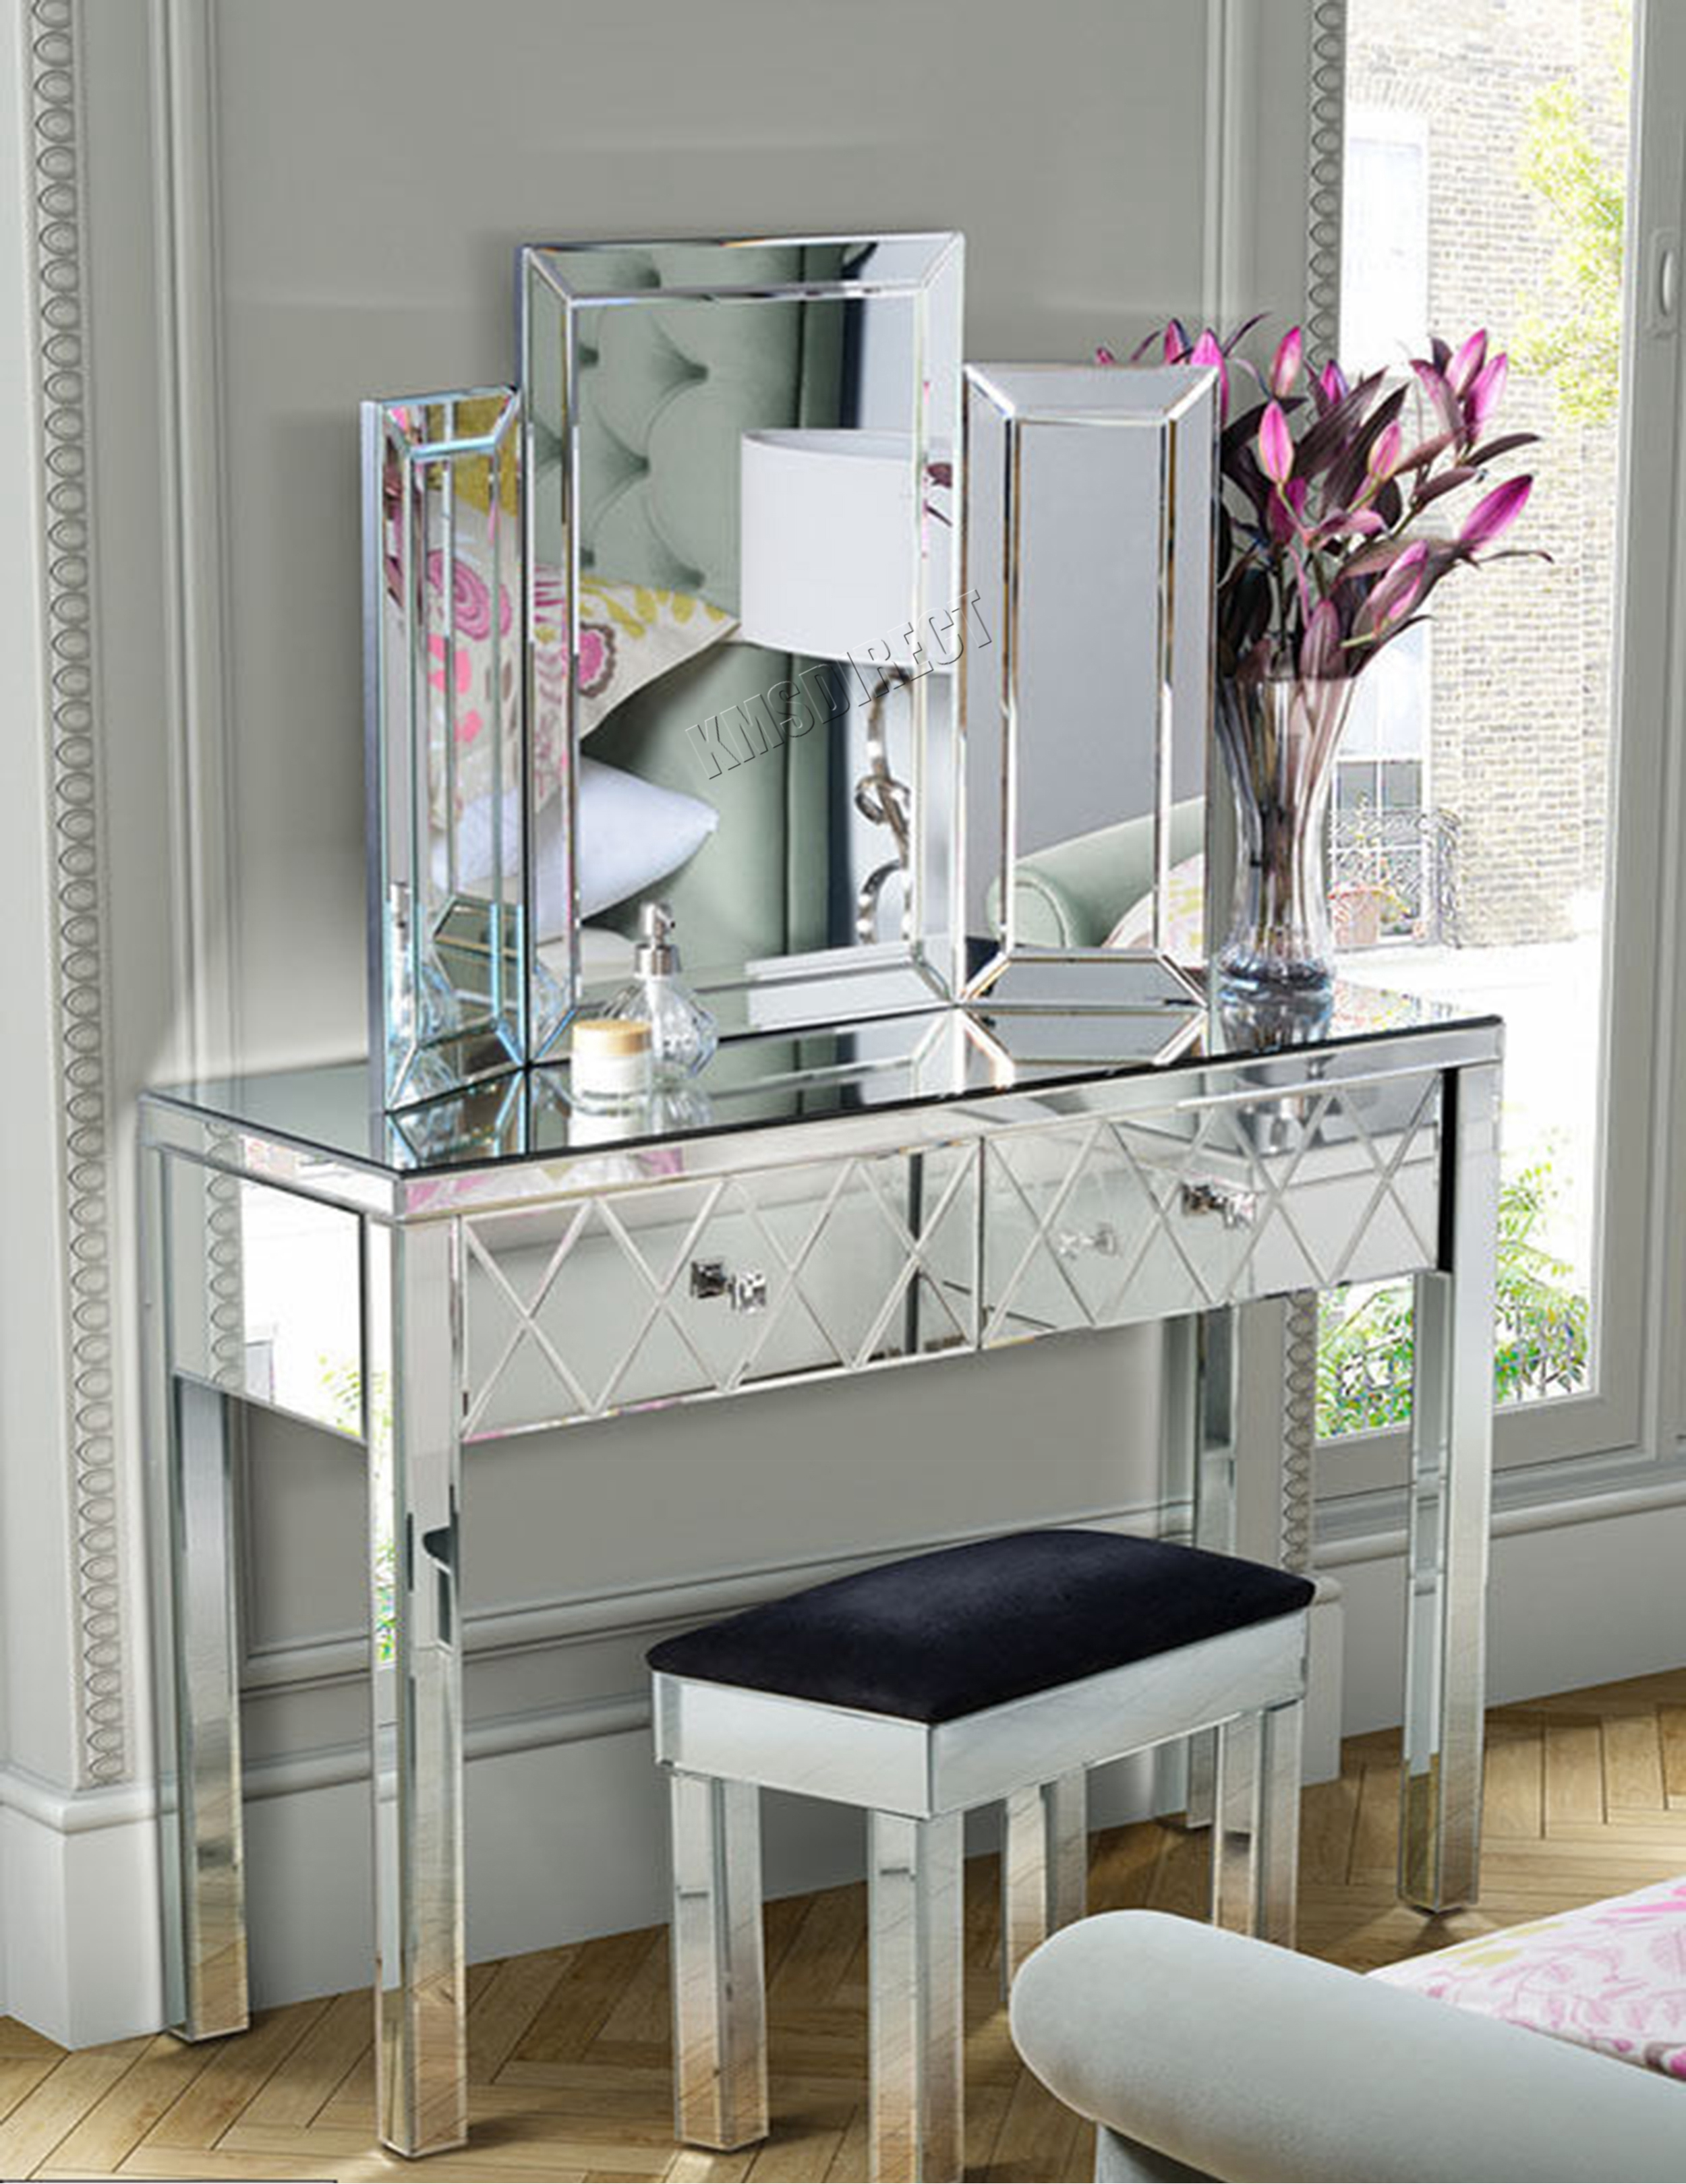 Mirrored Vanity Table And Stool: WestWood Mirrored Furniture Glass Dressing Table With